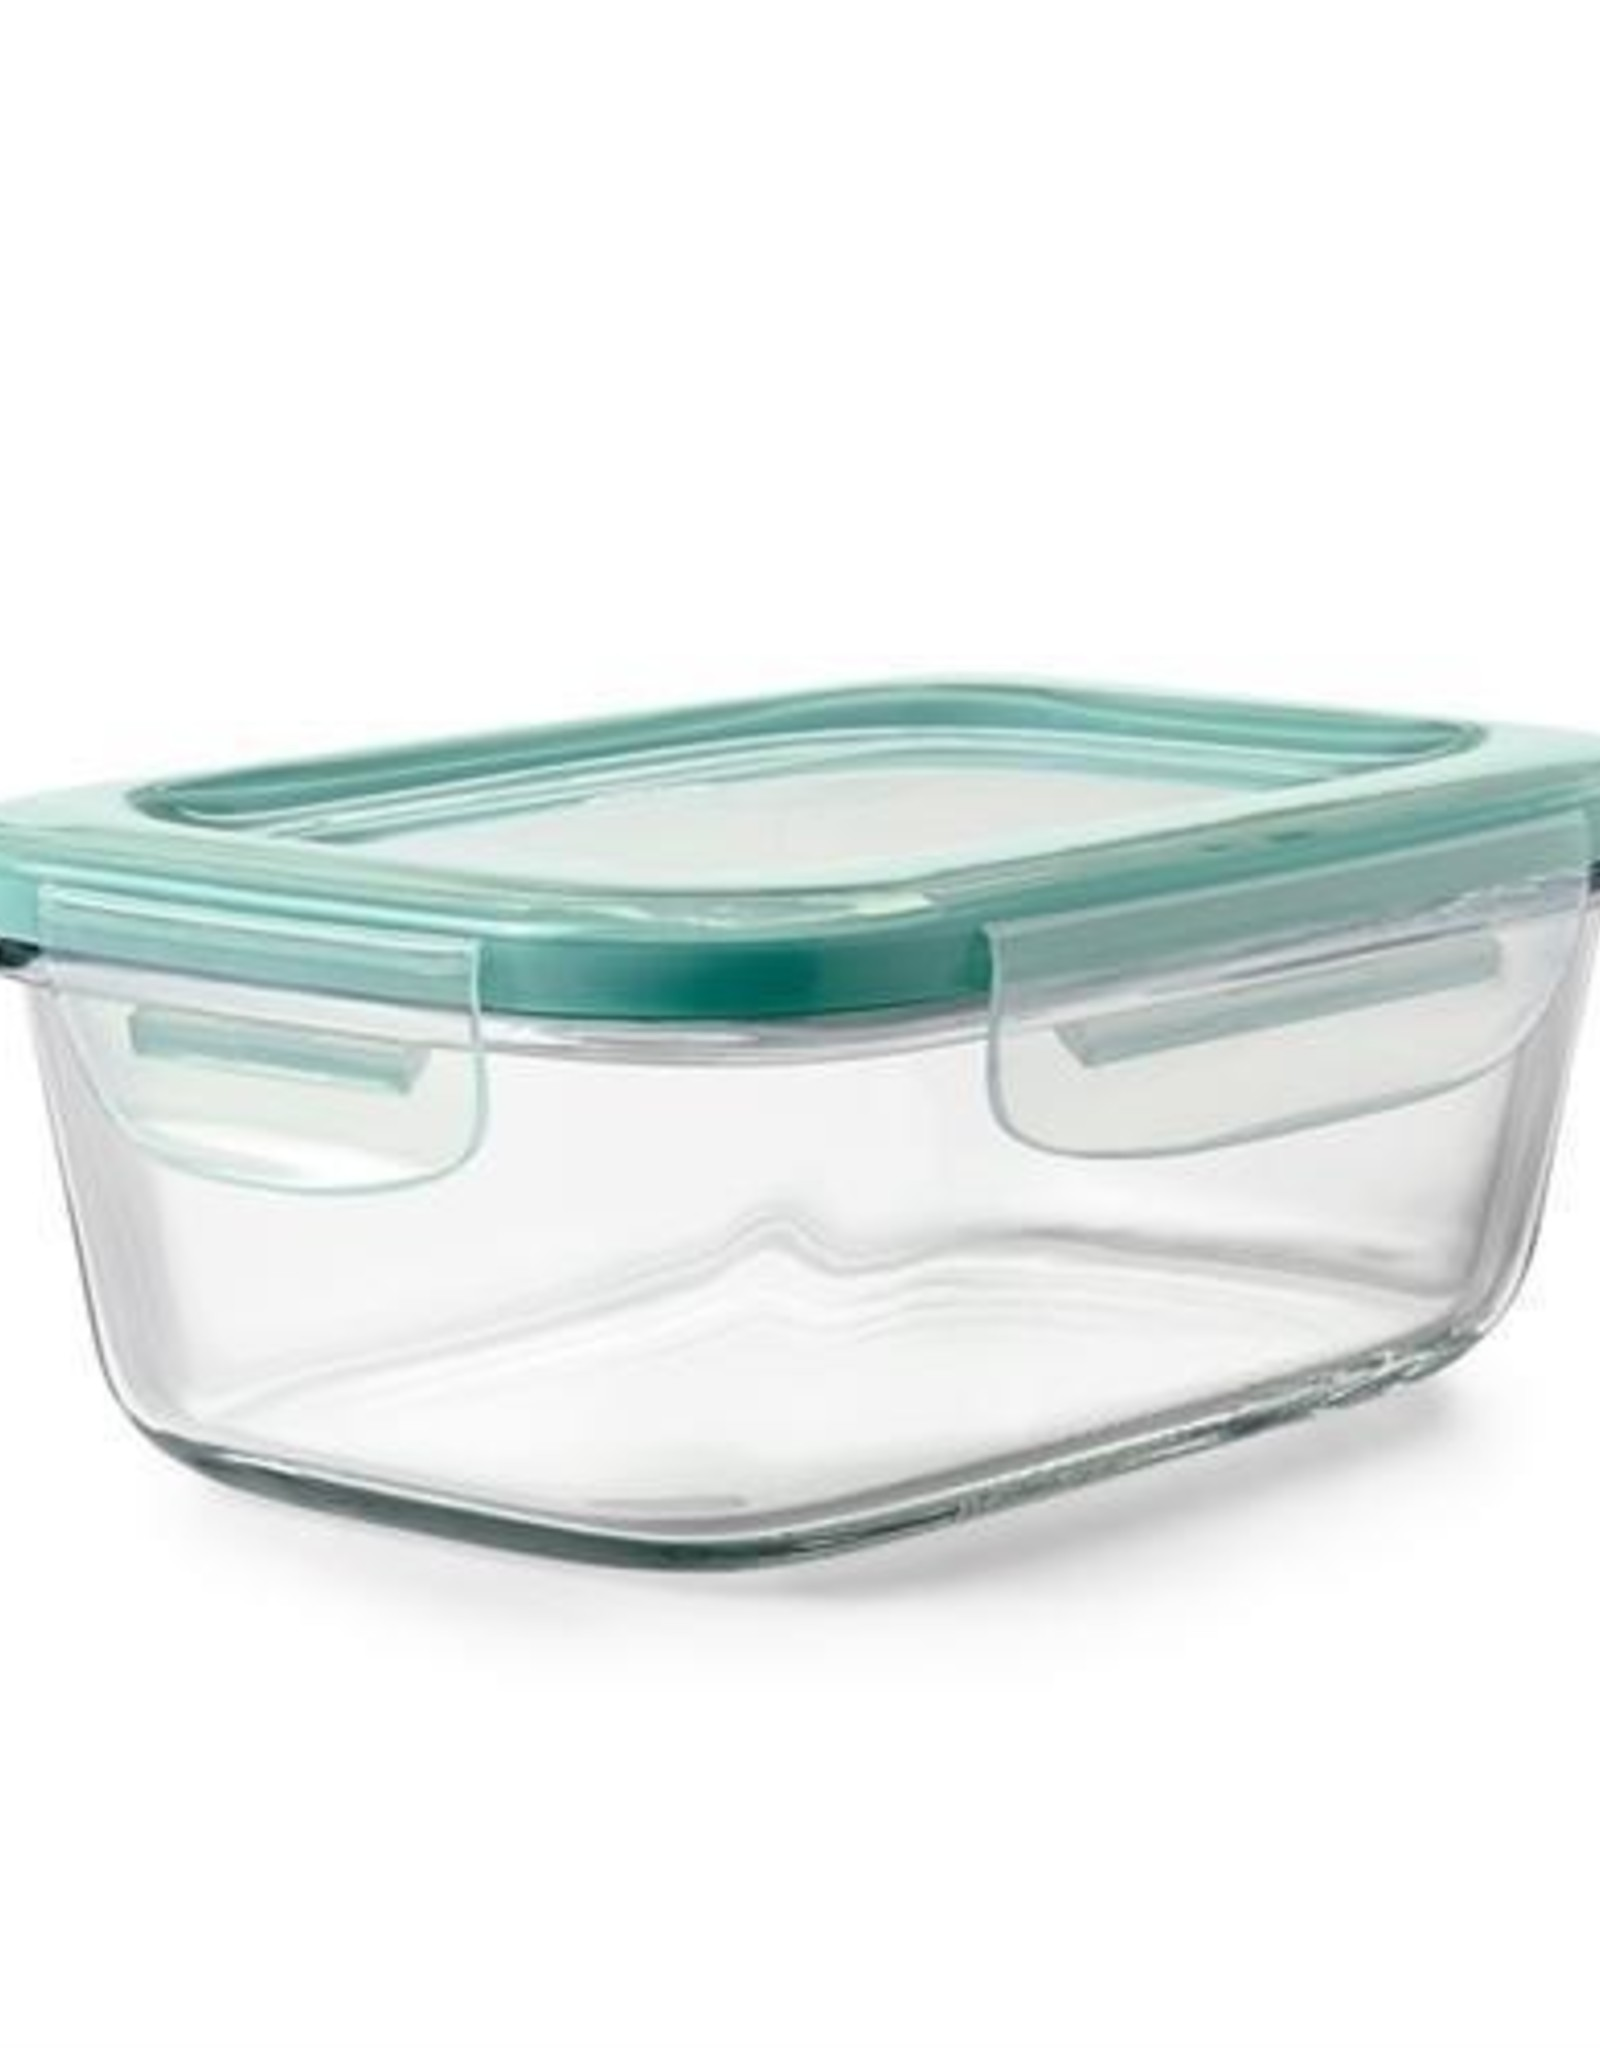 OXO SmartSeal Glass Rectangular Container w/Lid, 3.5cup